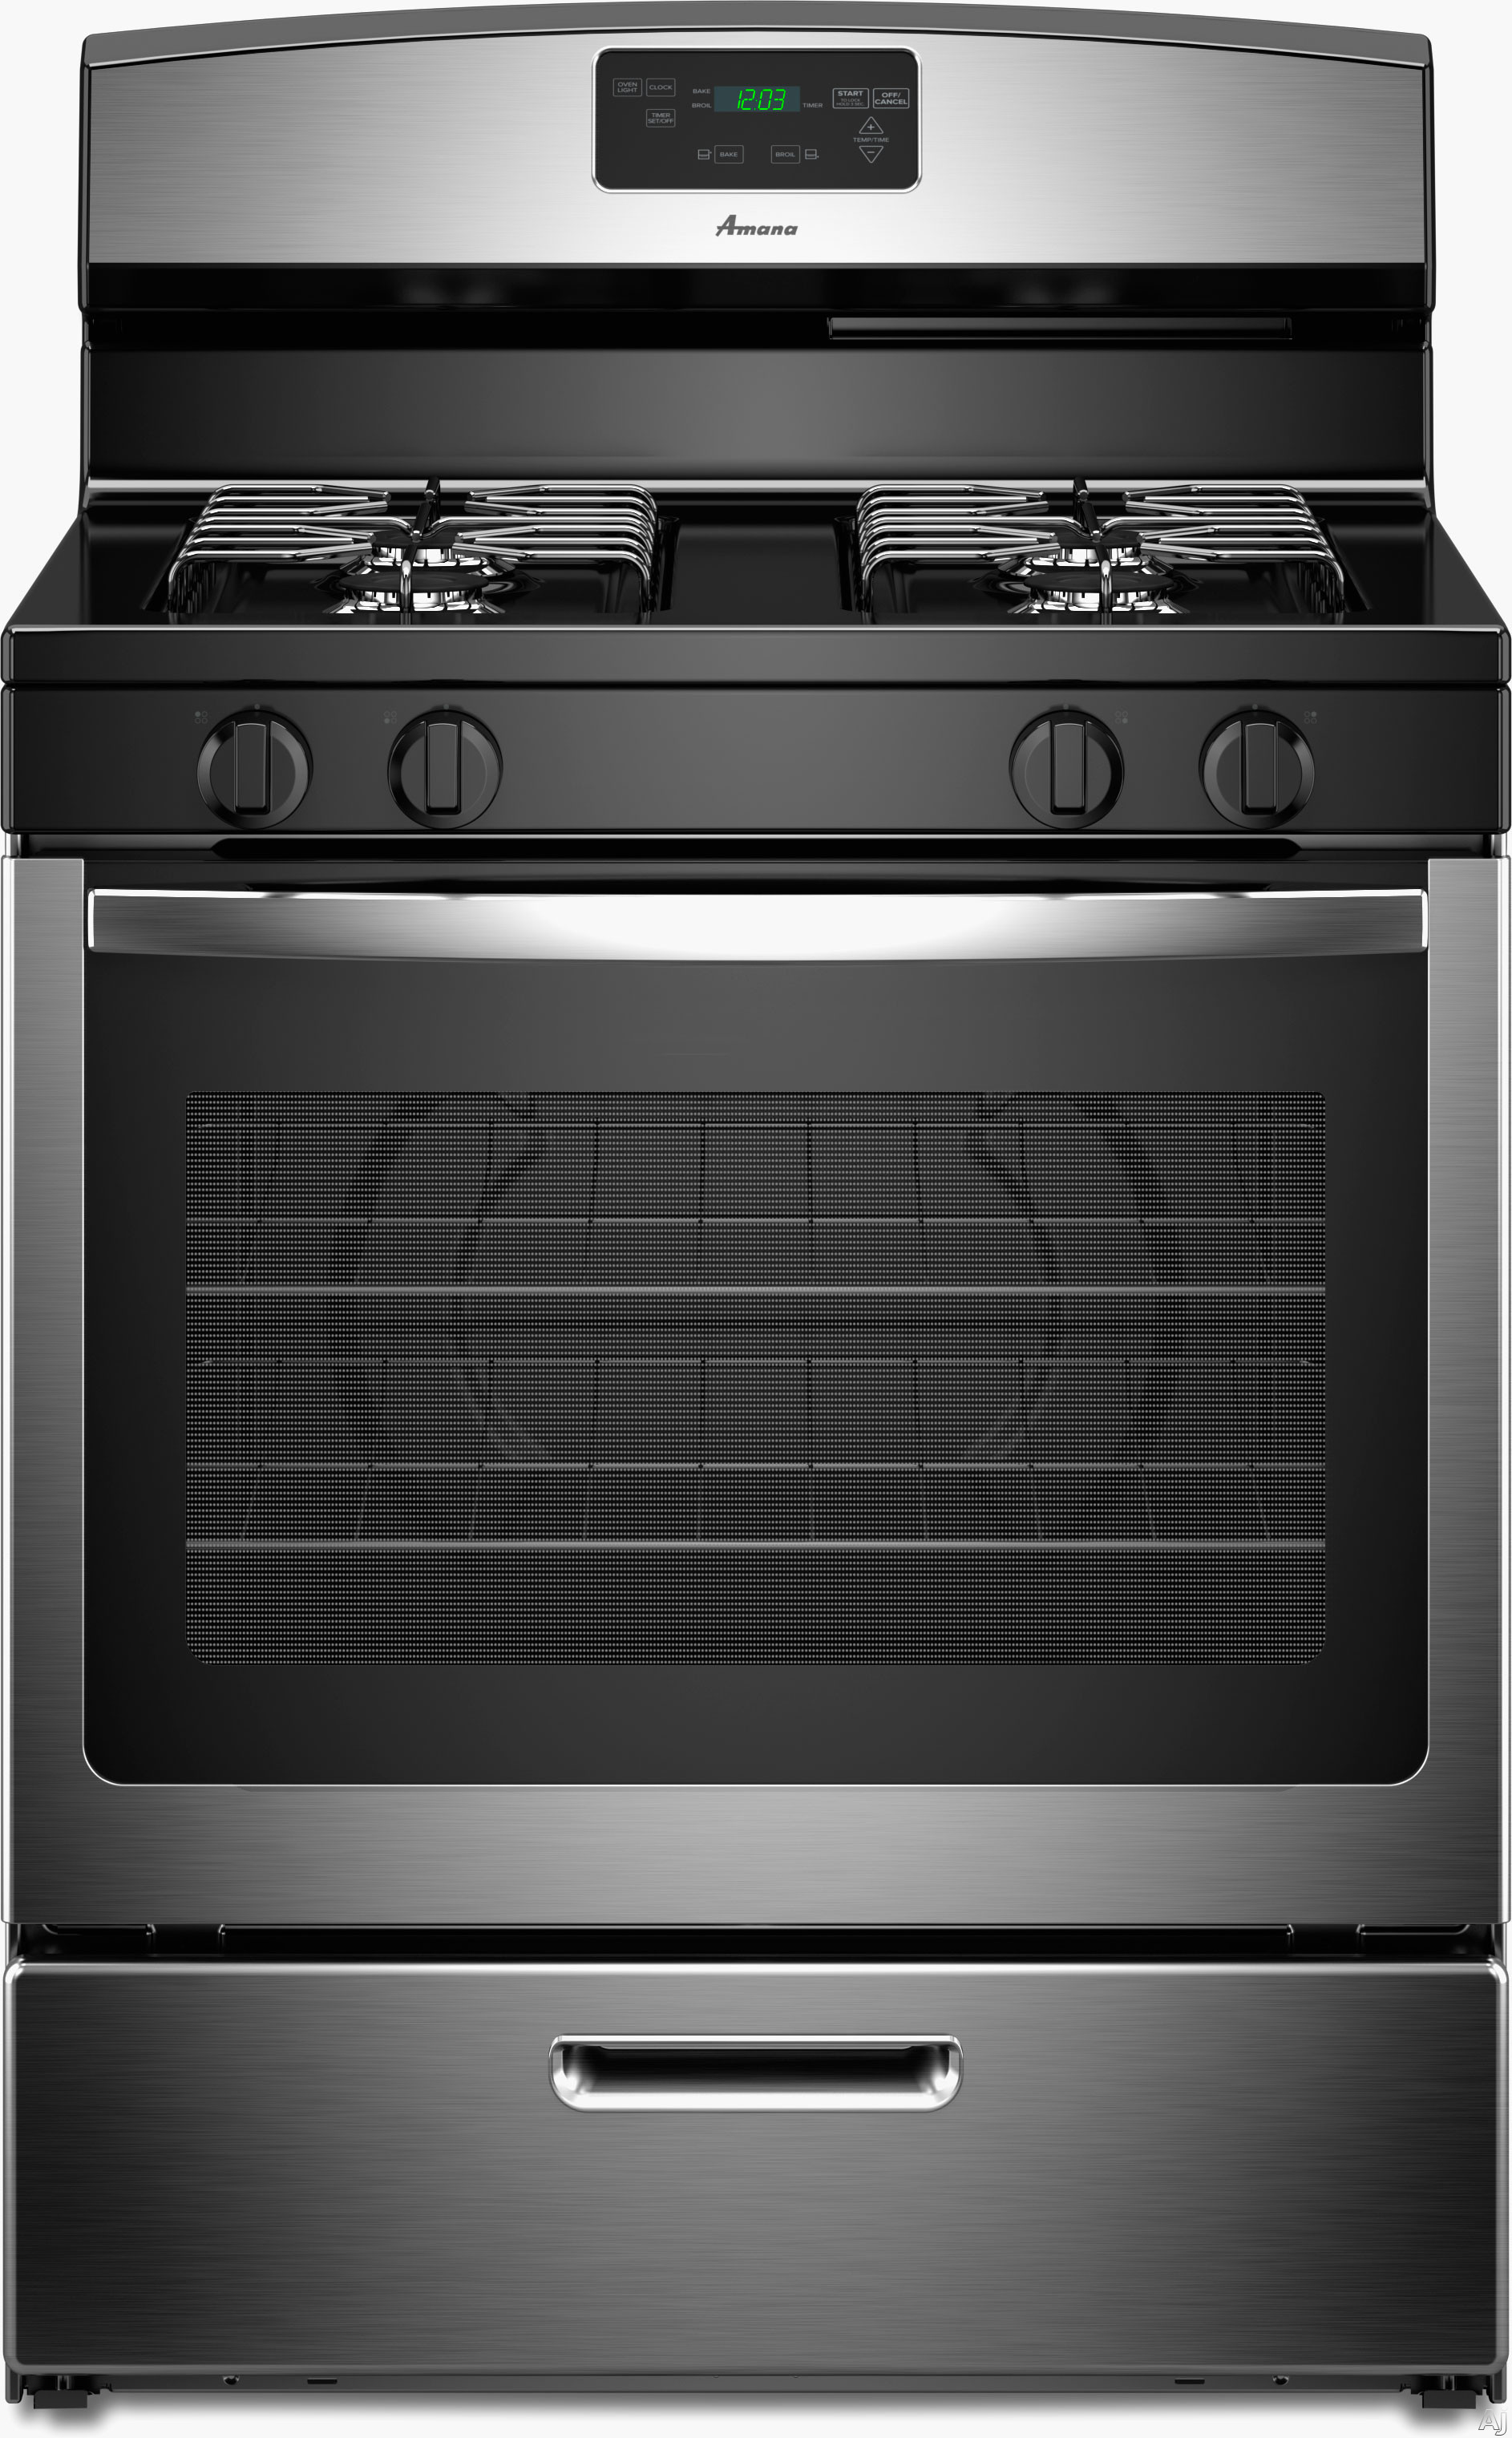 Frigidaire Sealed Burner Gas Range With Manual Clean Oven Manual Guide